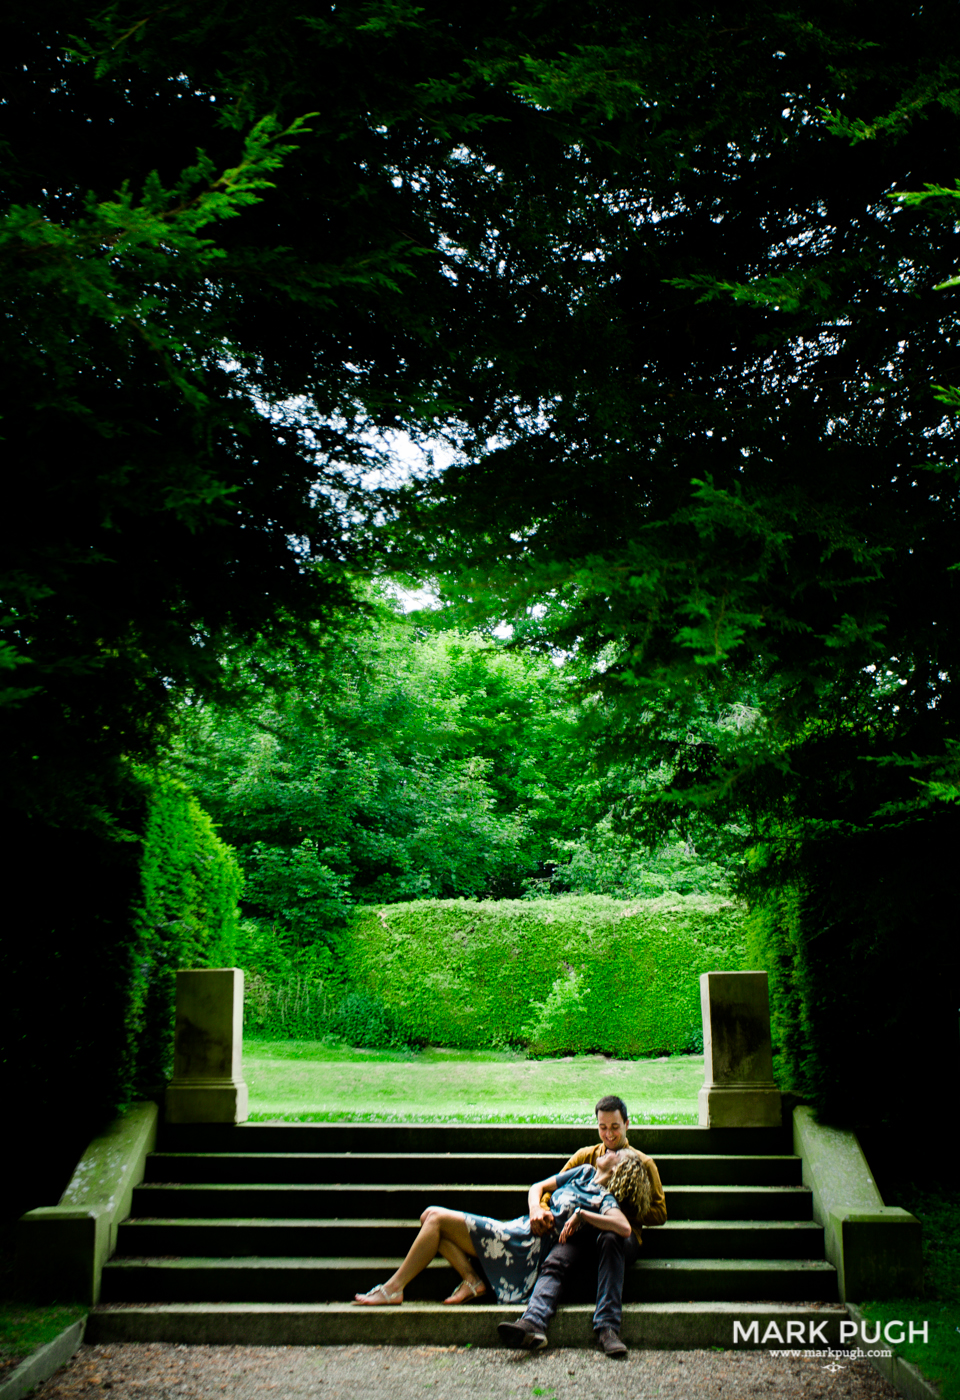 071 -  Sarah and Davids preWED at Stoke Rochford Hall by www.markpugh.com - 0075.JPG